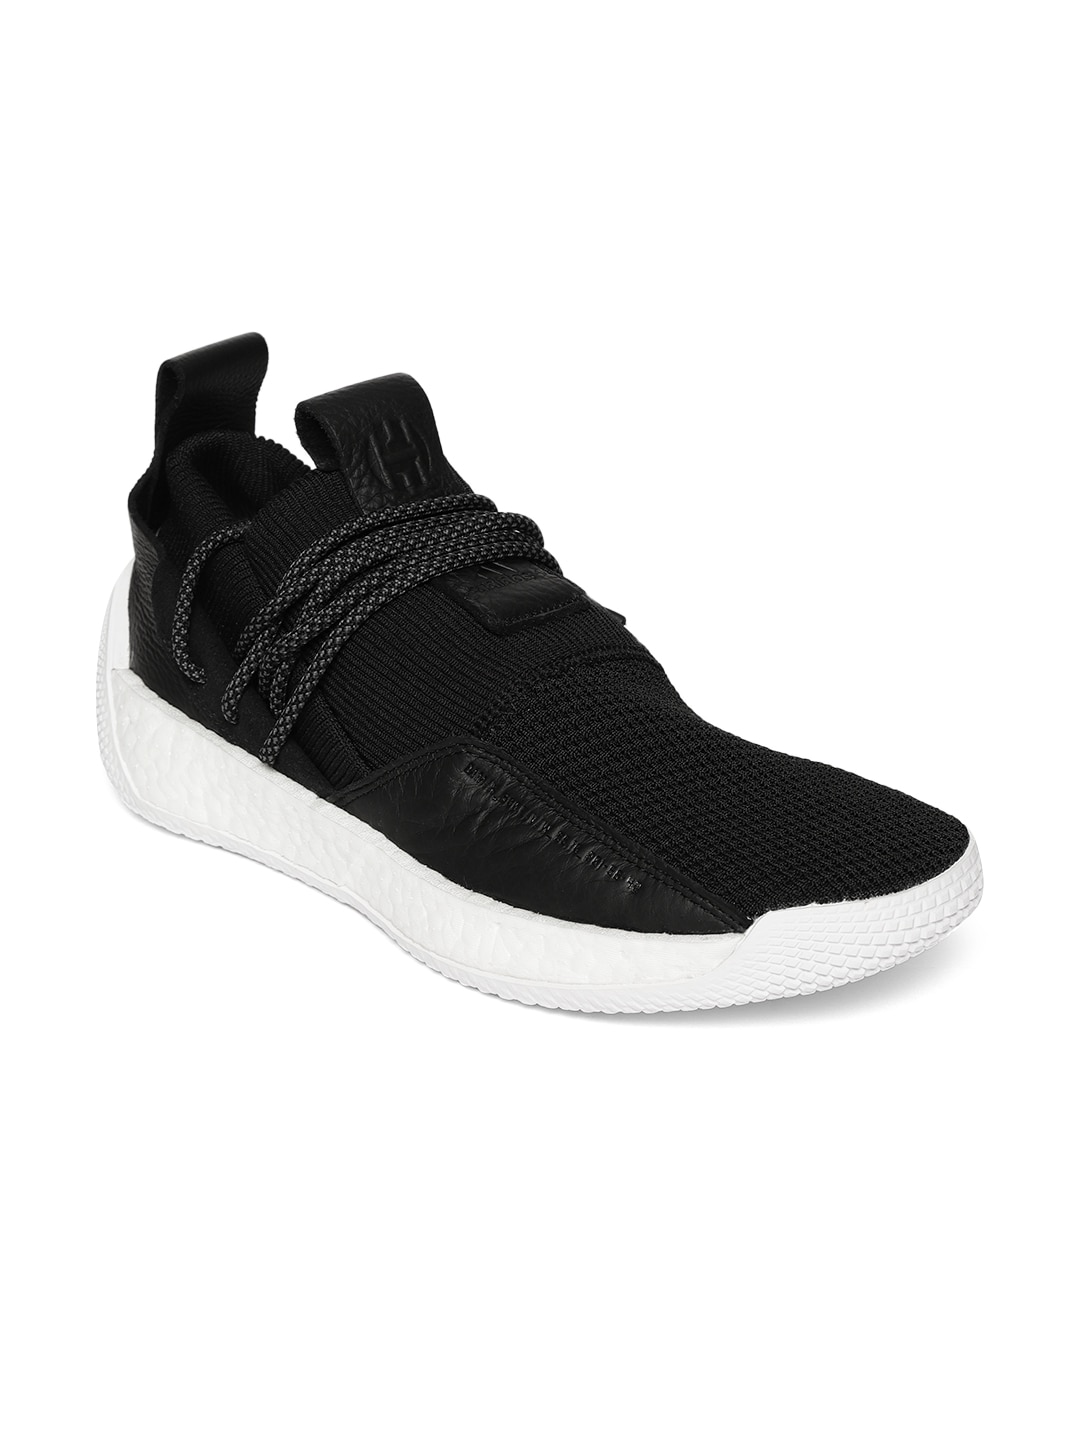 024e4feb56006d Adidas Shoes - Buy Adidas Shoes for Men   Women Online - Myntra